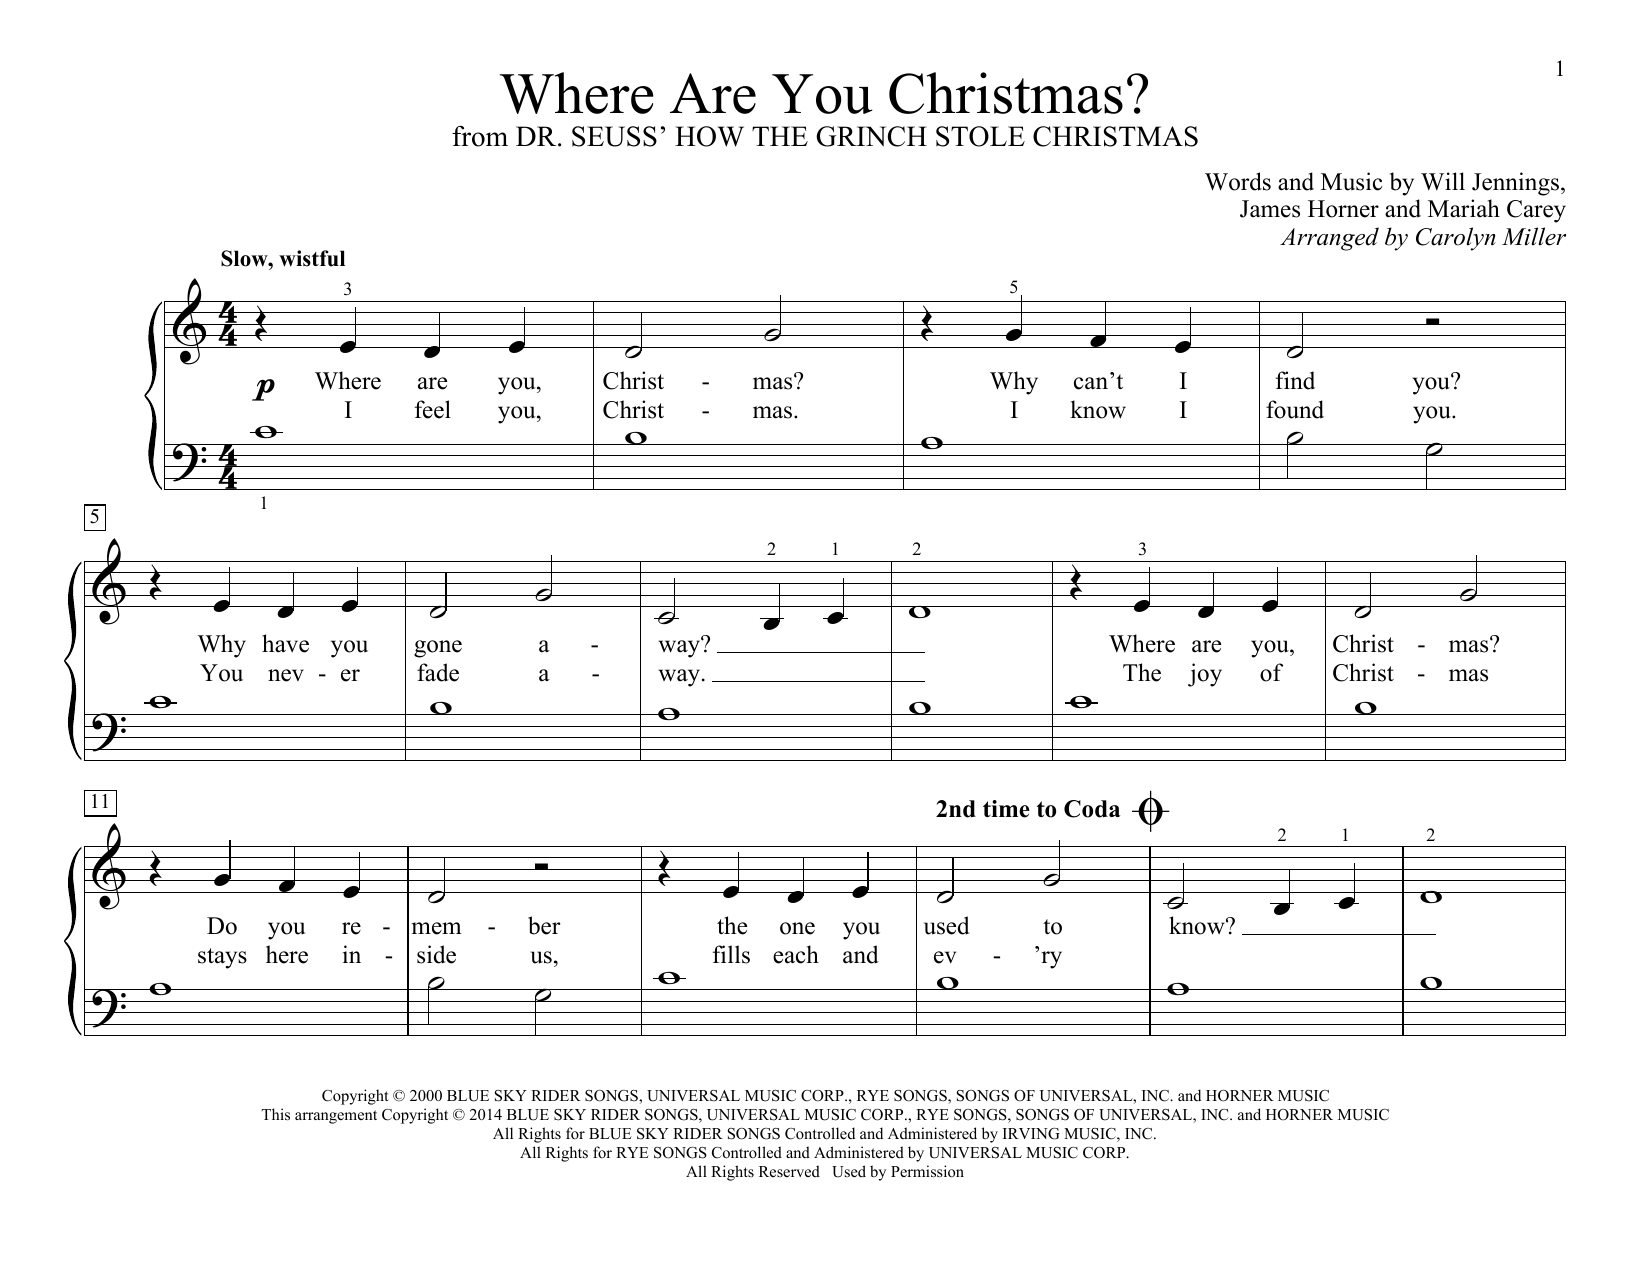 Where Are You Christmas? Sheet Music